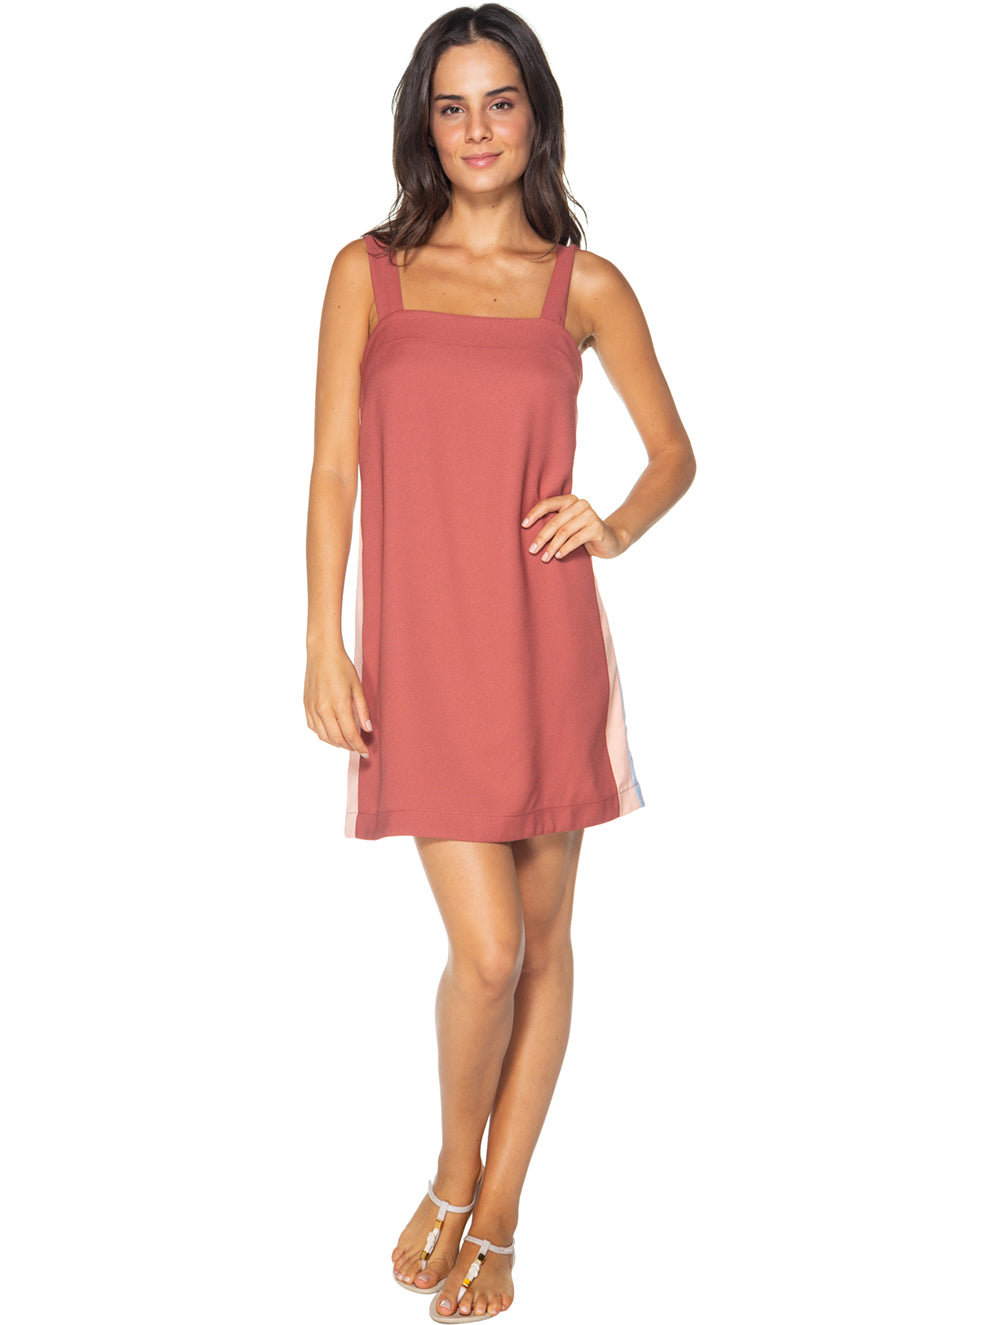 Solid-Color Cutouts Short Dress